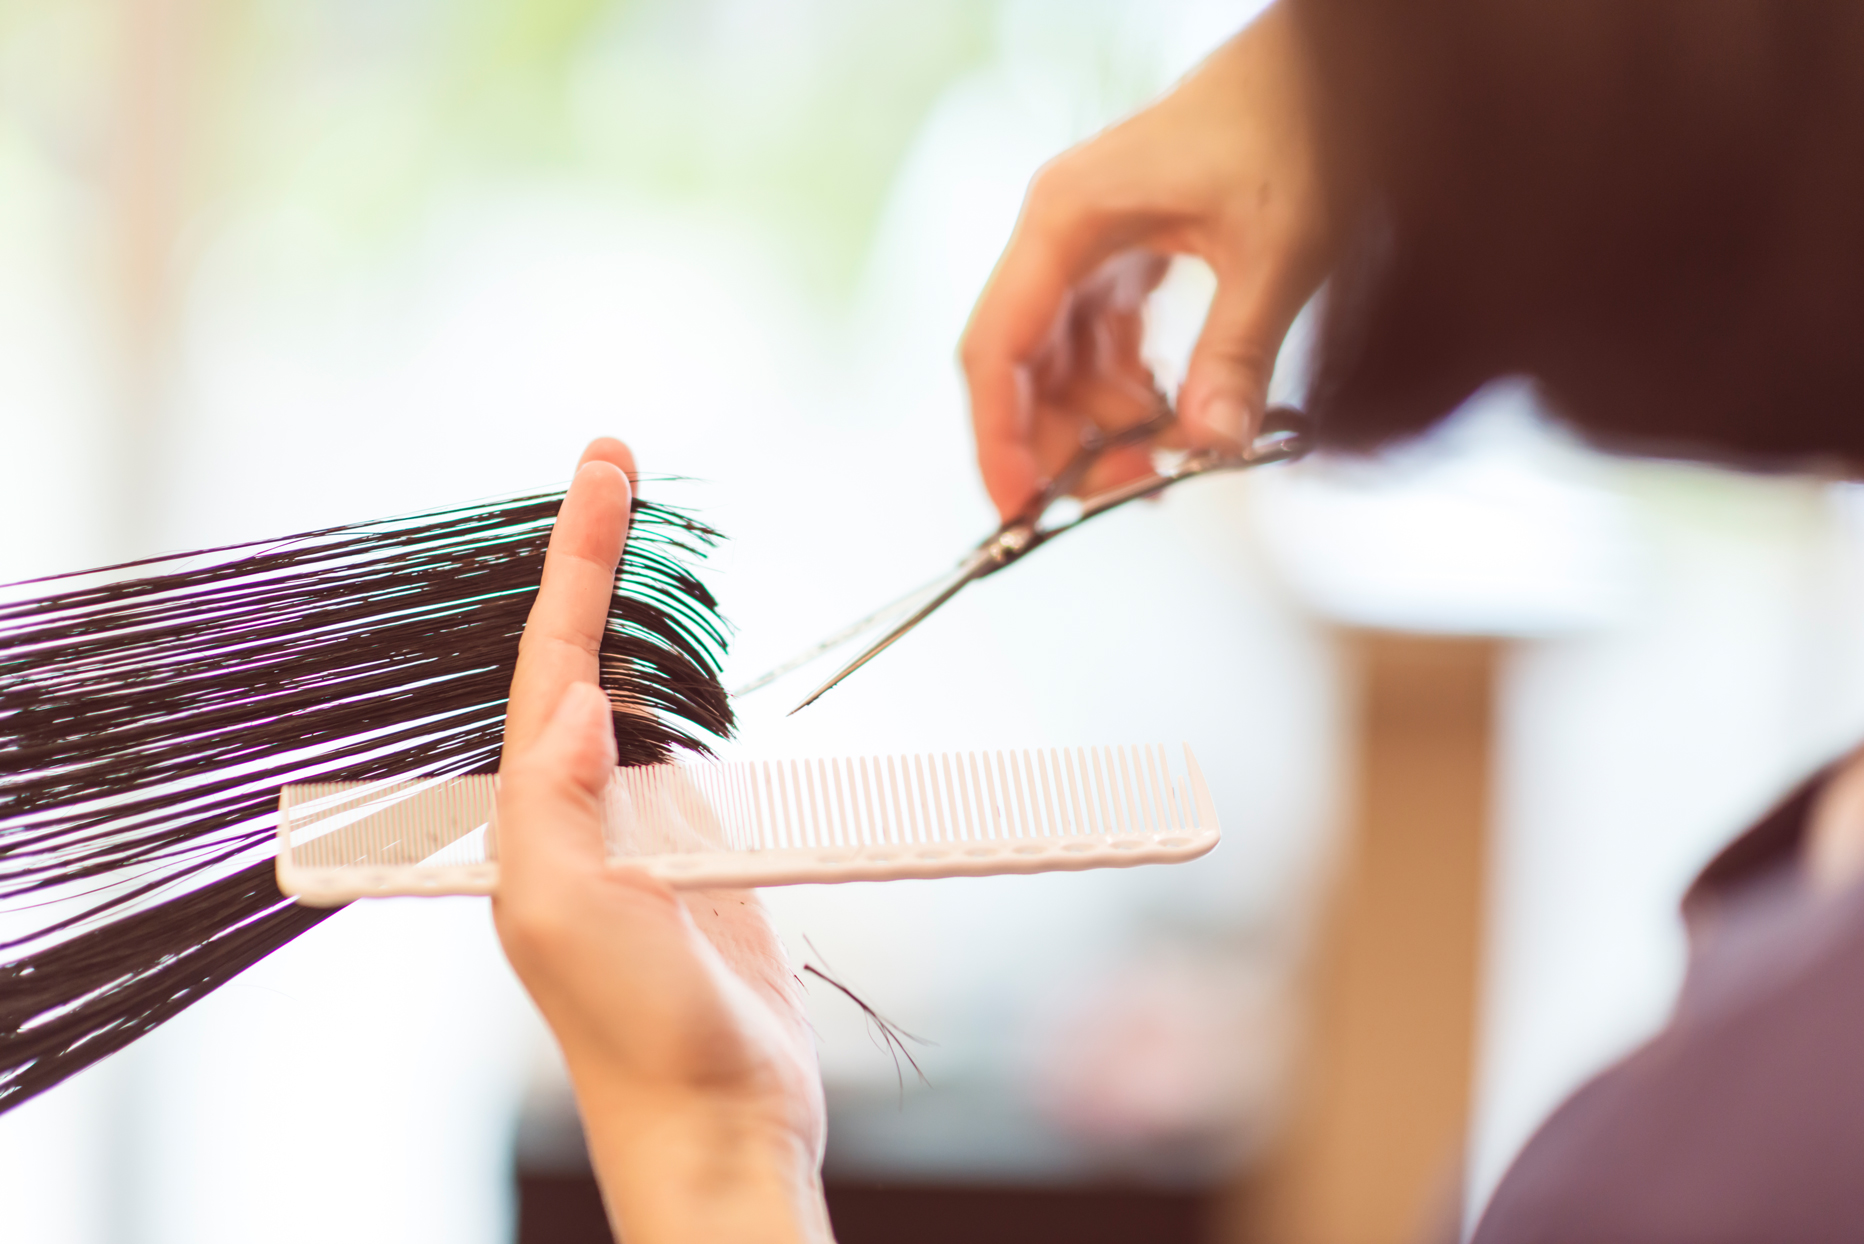 person cutting dark colored hair with scissors holding a comb